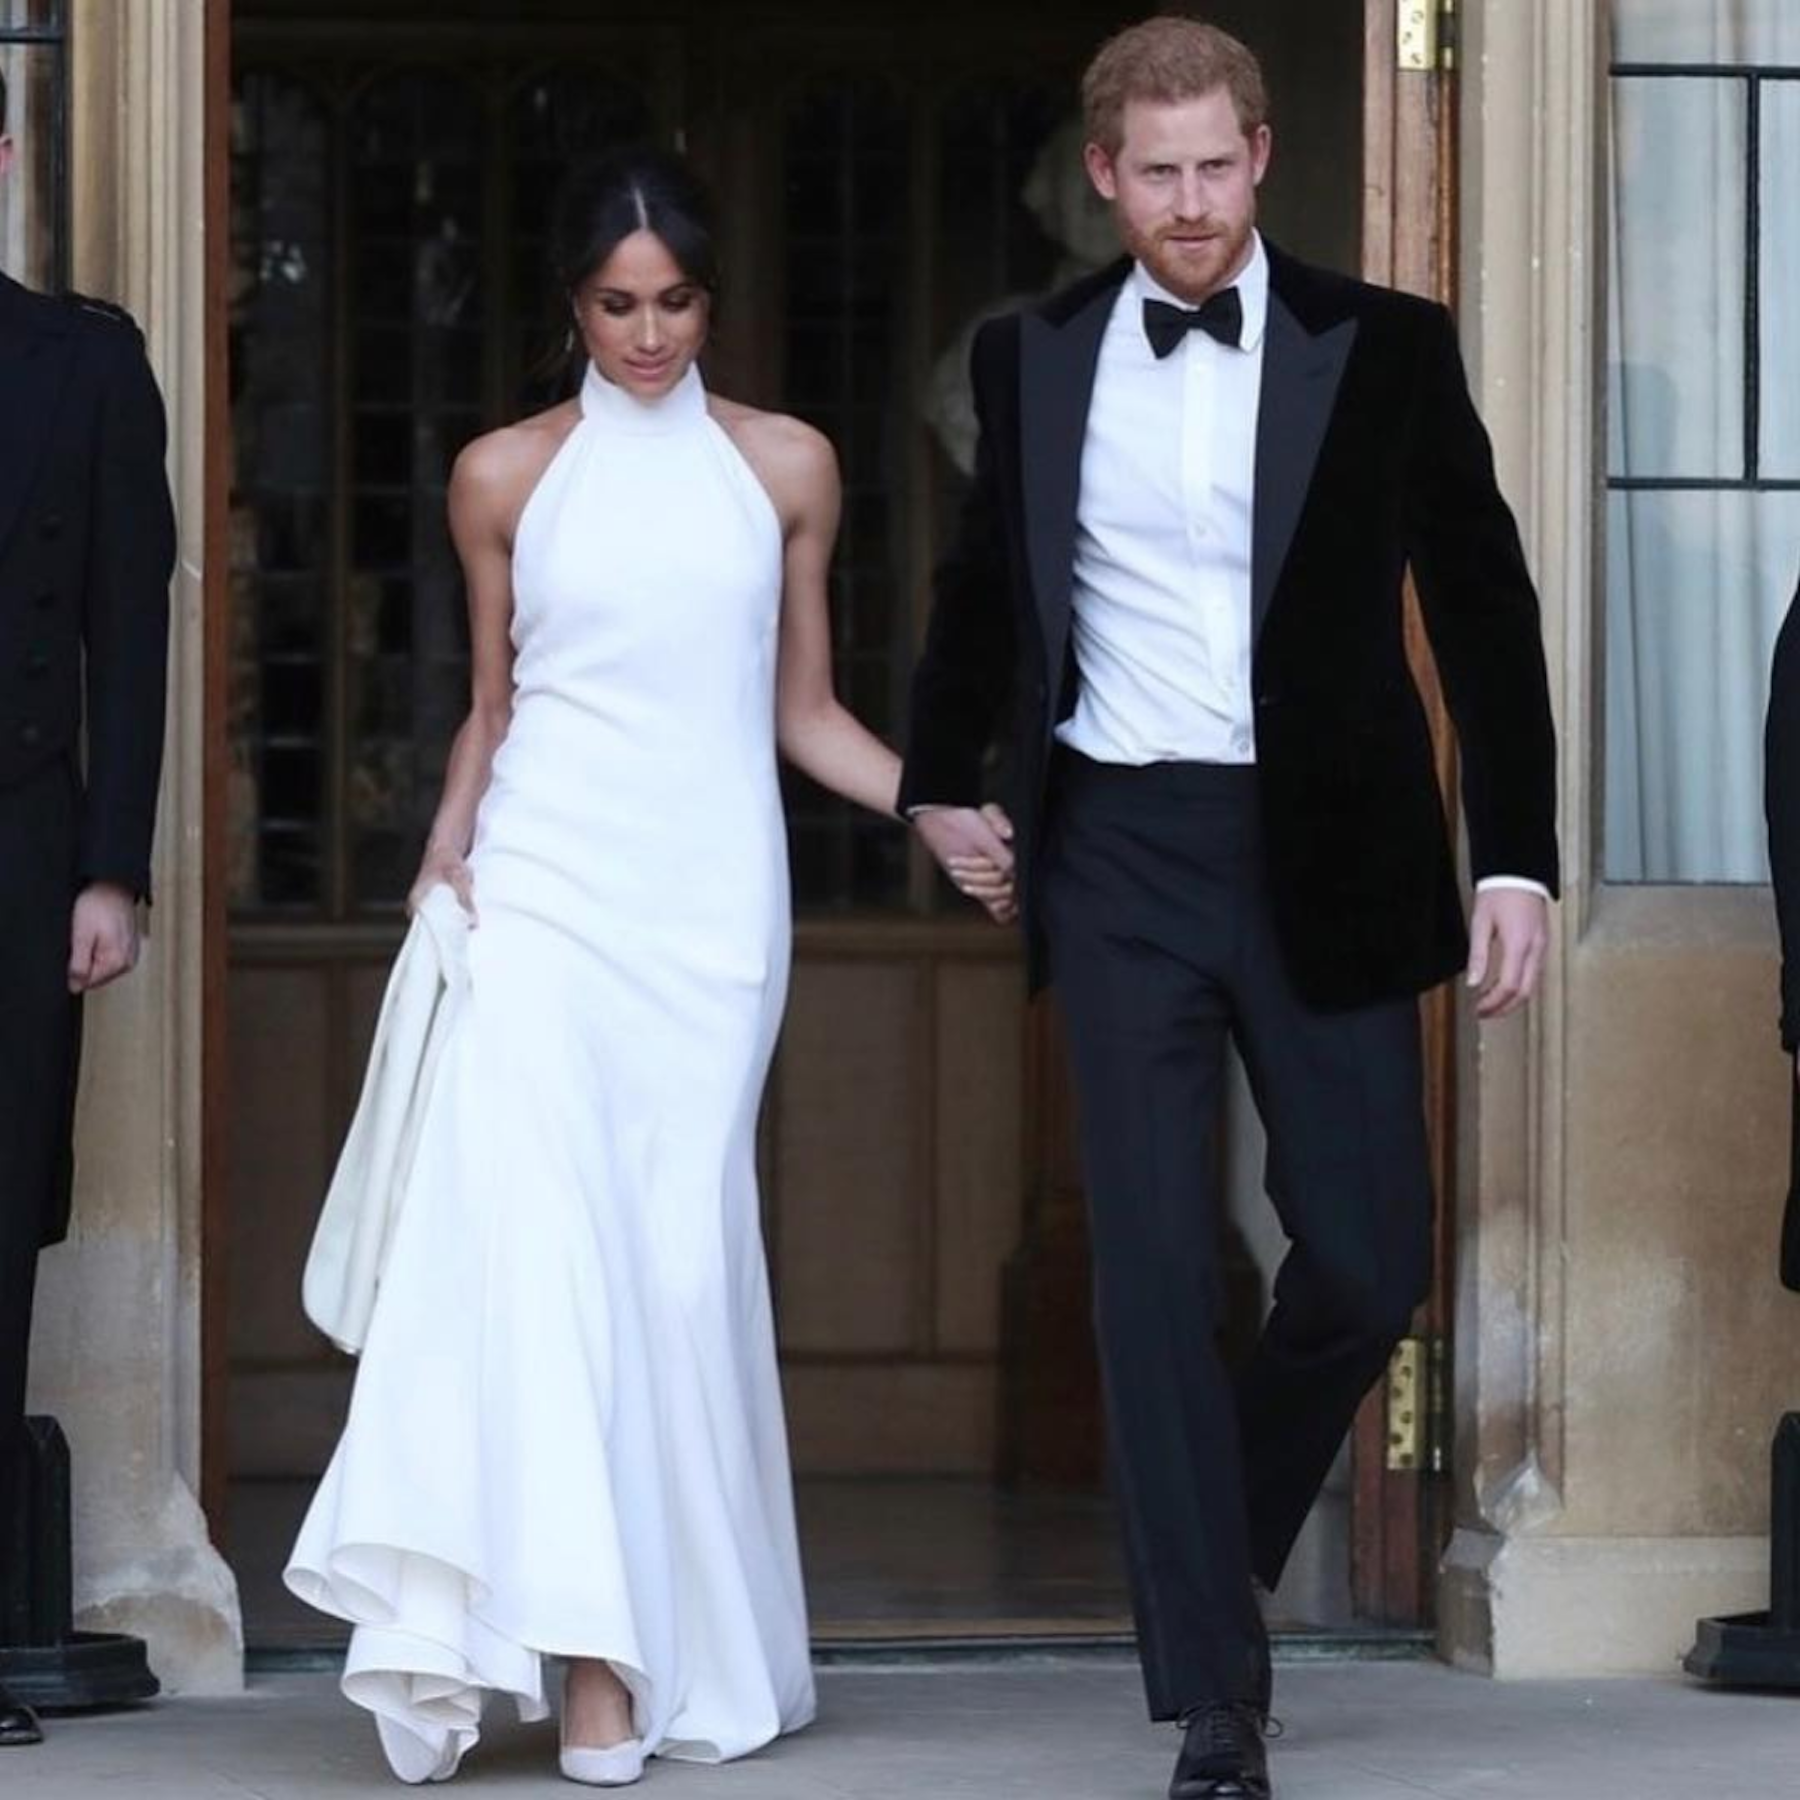 Who could forget the chic Stella McCartney gown HRH wore to the royal wedding reception? - This wouldn't be a 2018 bridal round-up without Meghan Markle.